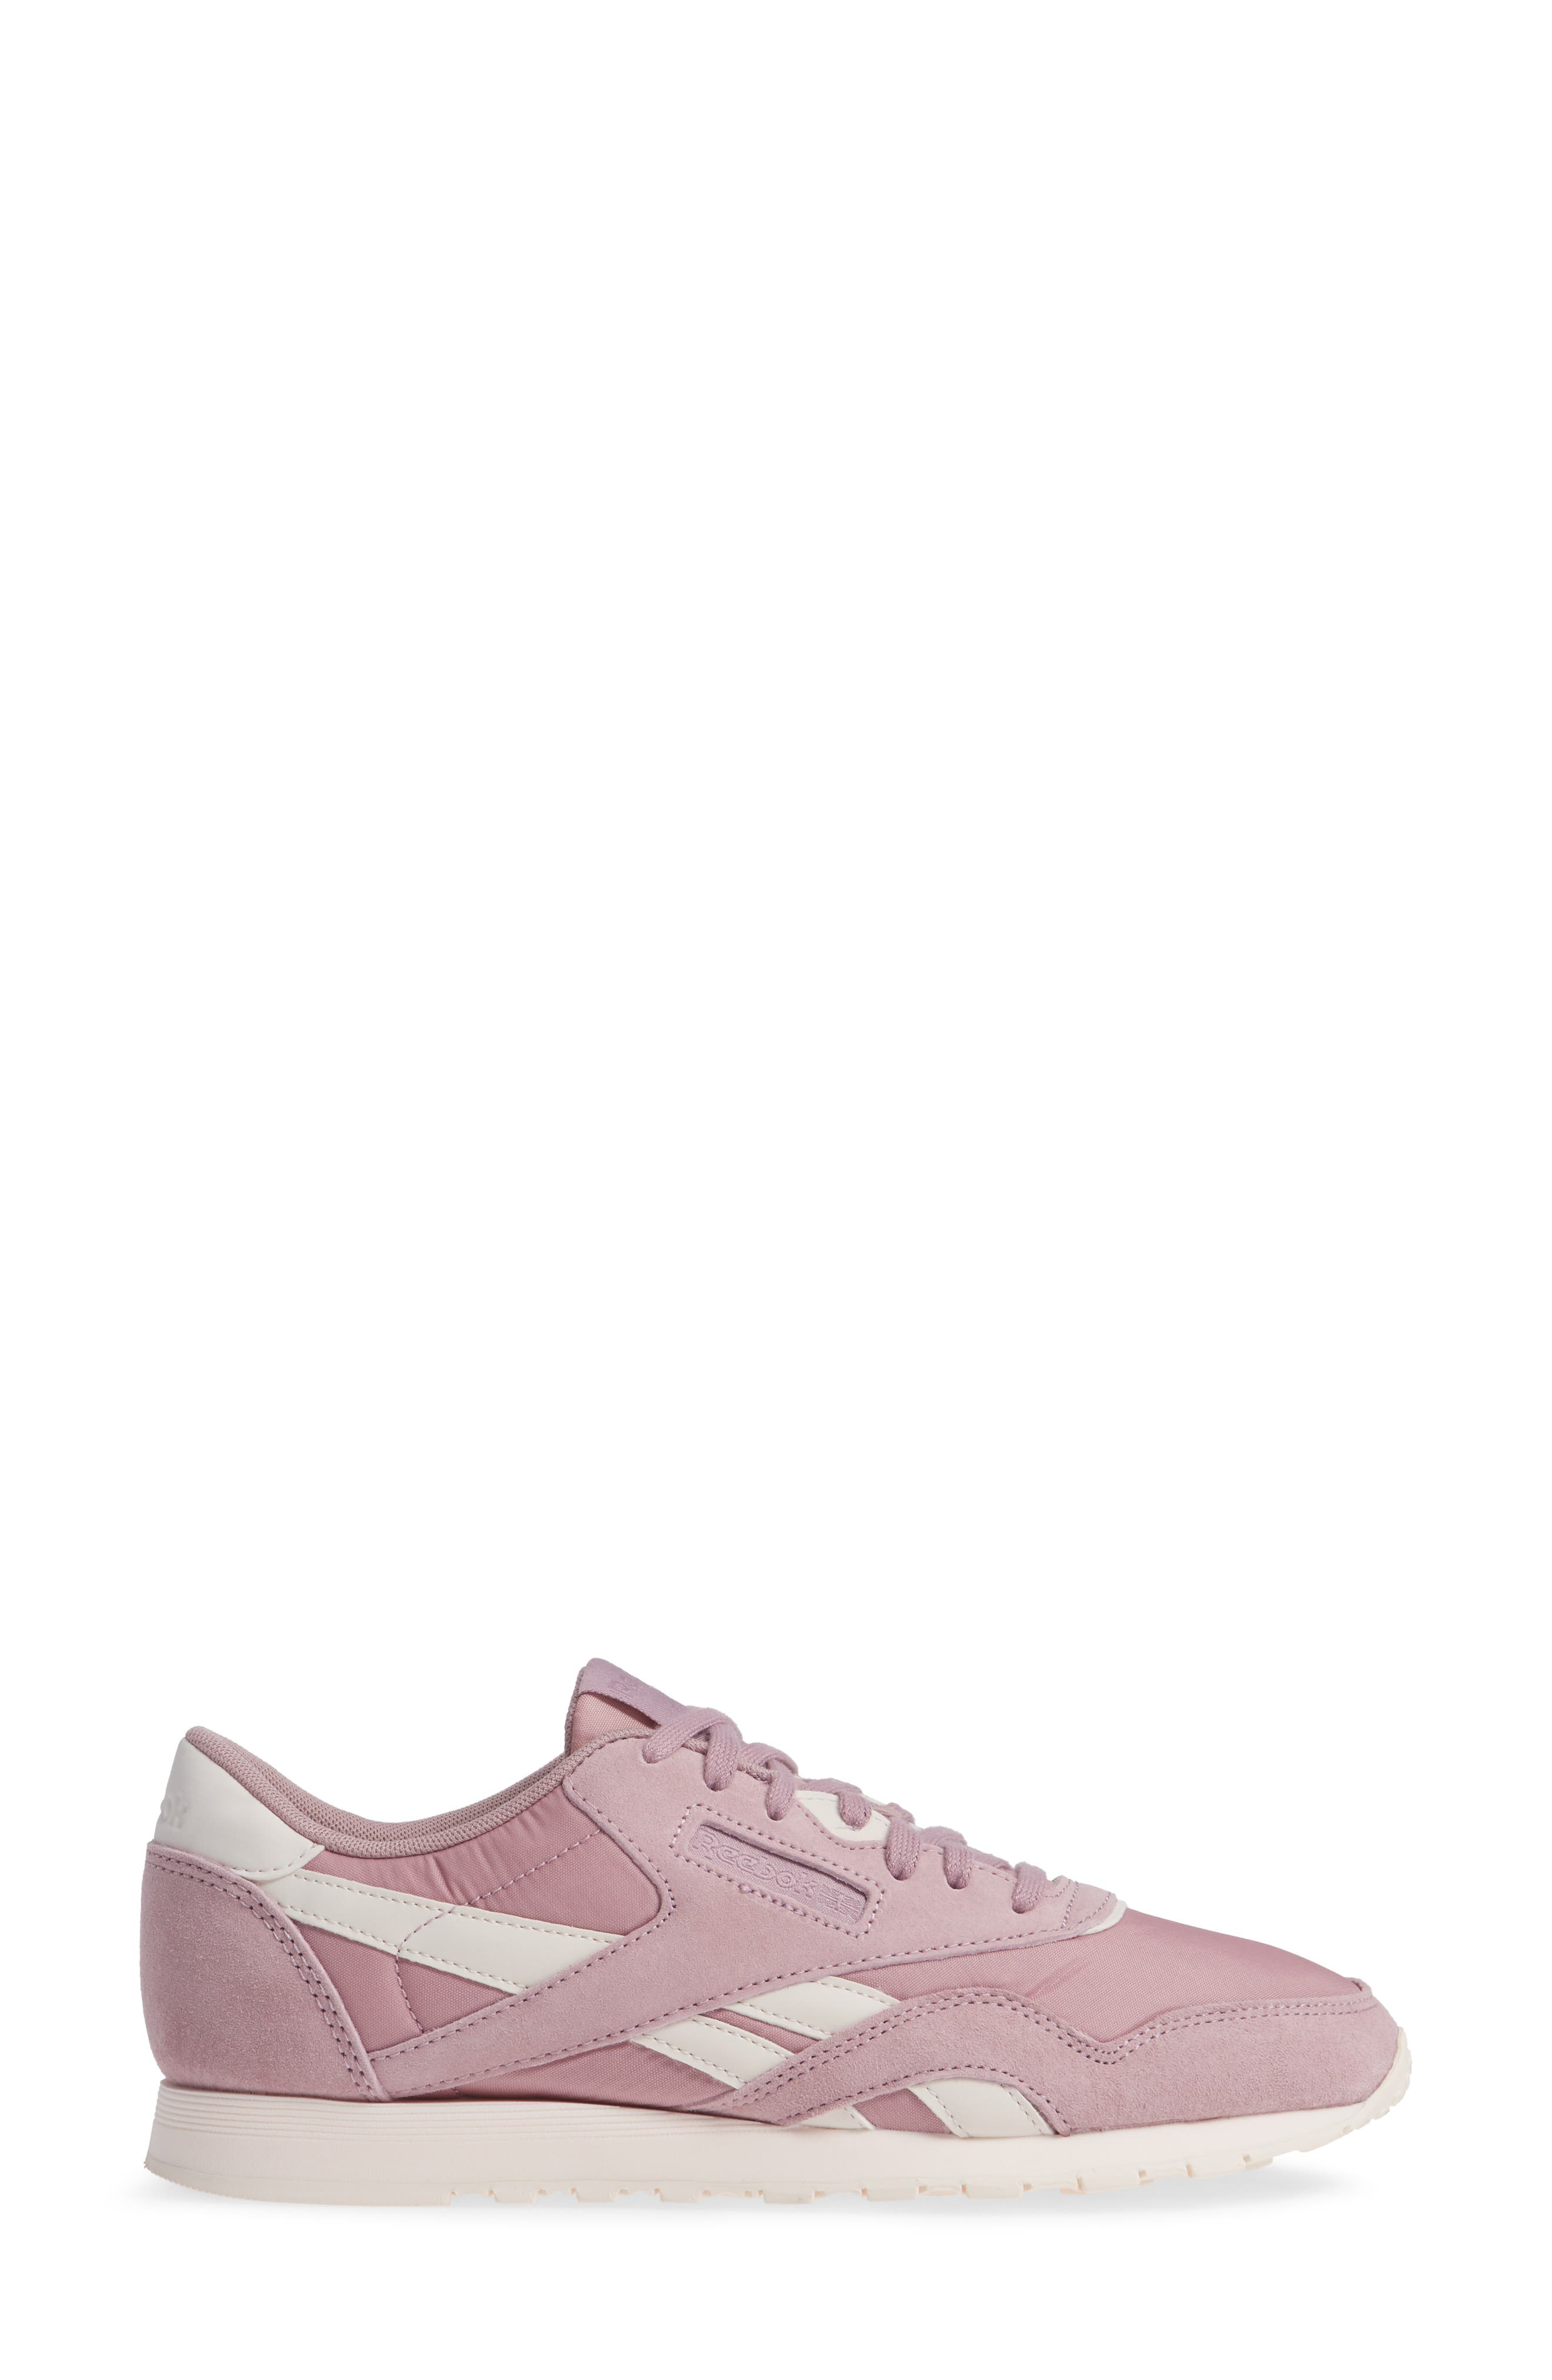 Classic Sneaker,                             Alternate thumbnail 3, color,                             INFUSED LILAC/ PALE PINK